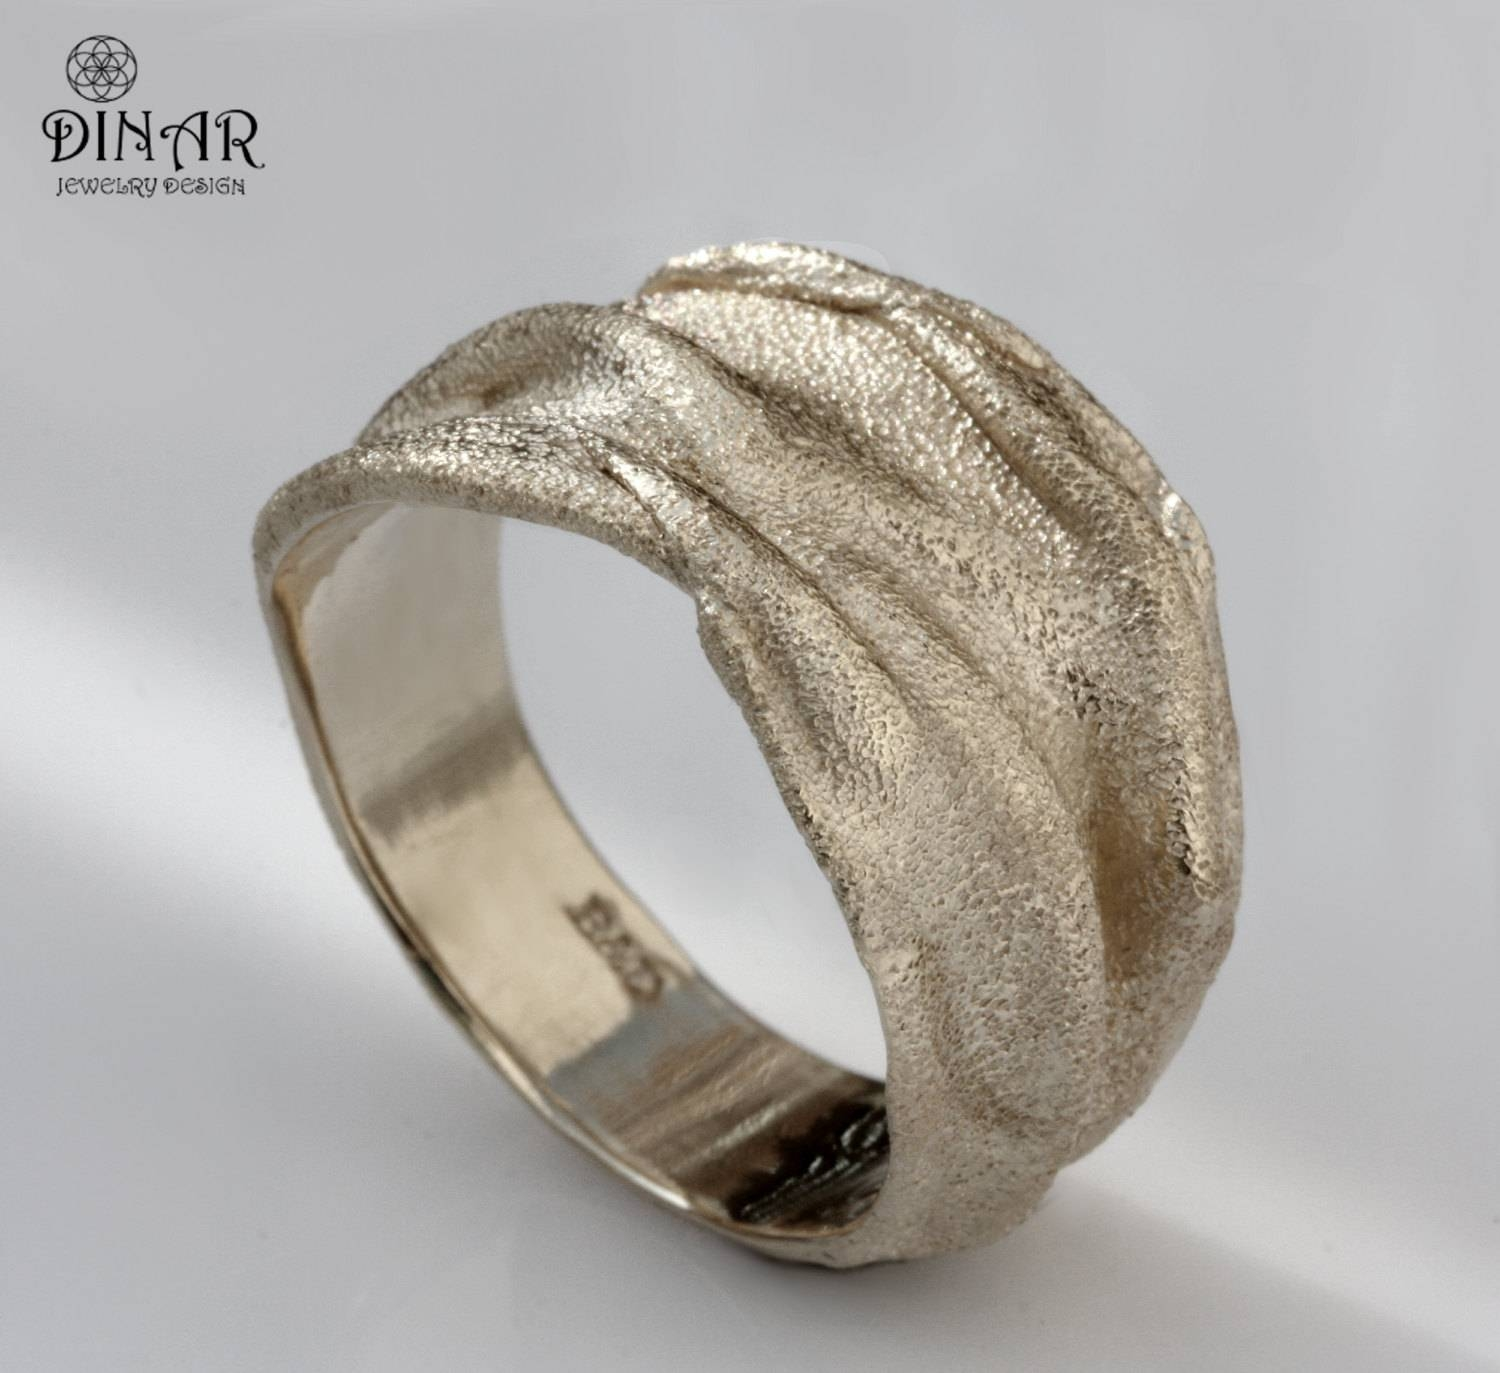 White Gold Wedding Band 18K Gold Men Band 14K Golddinarjewelry Intended For Most Recent Thick White Gold Wedding Bands (View 13 of 15)